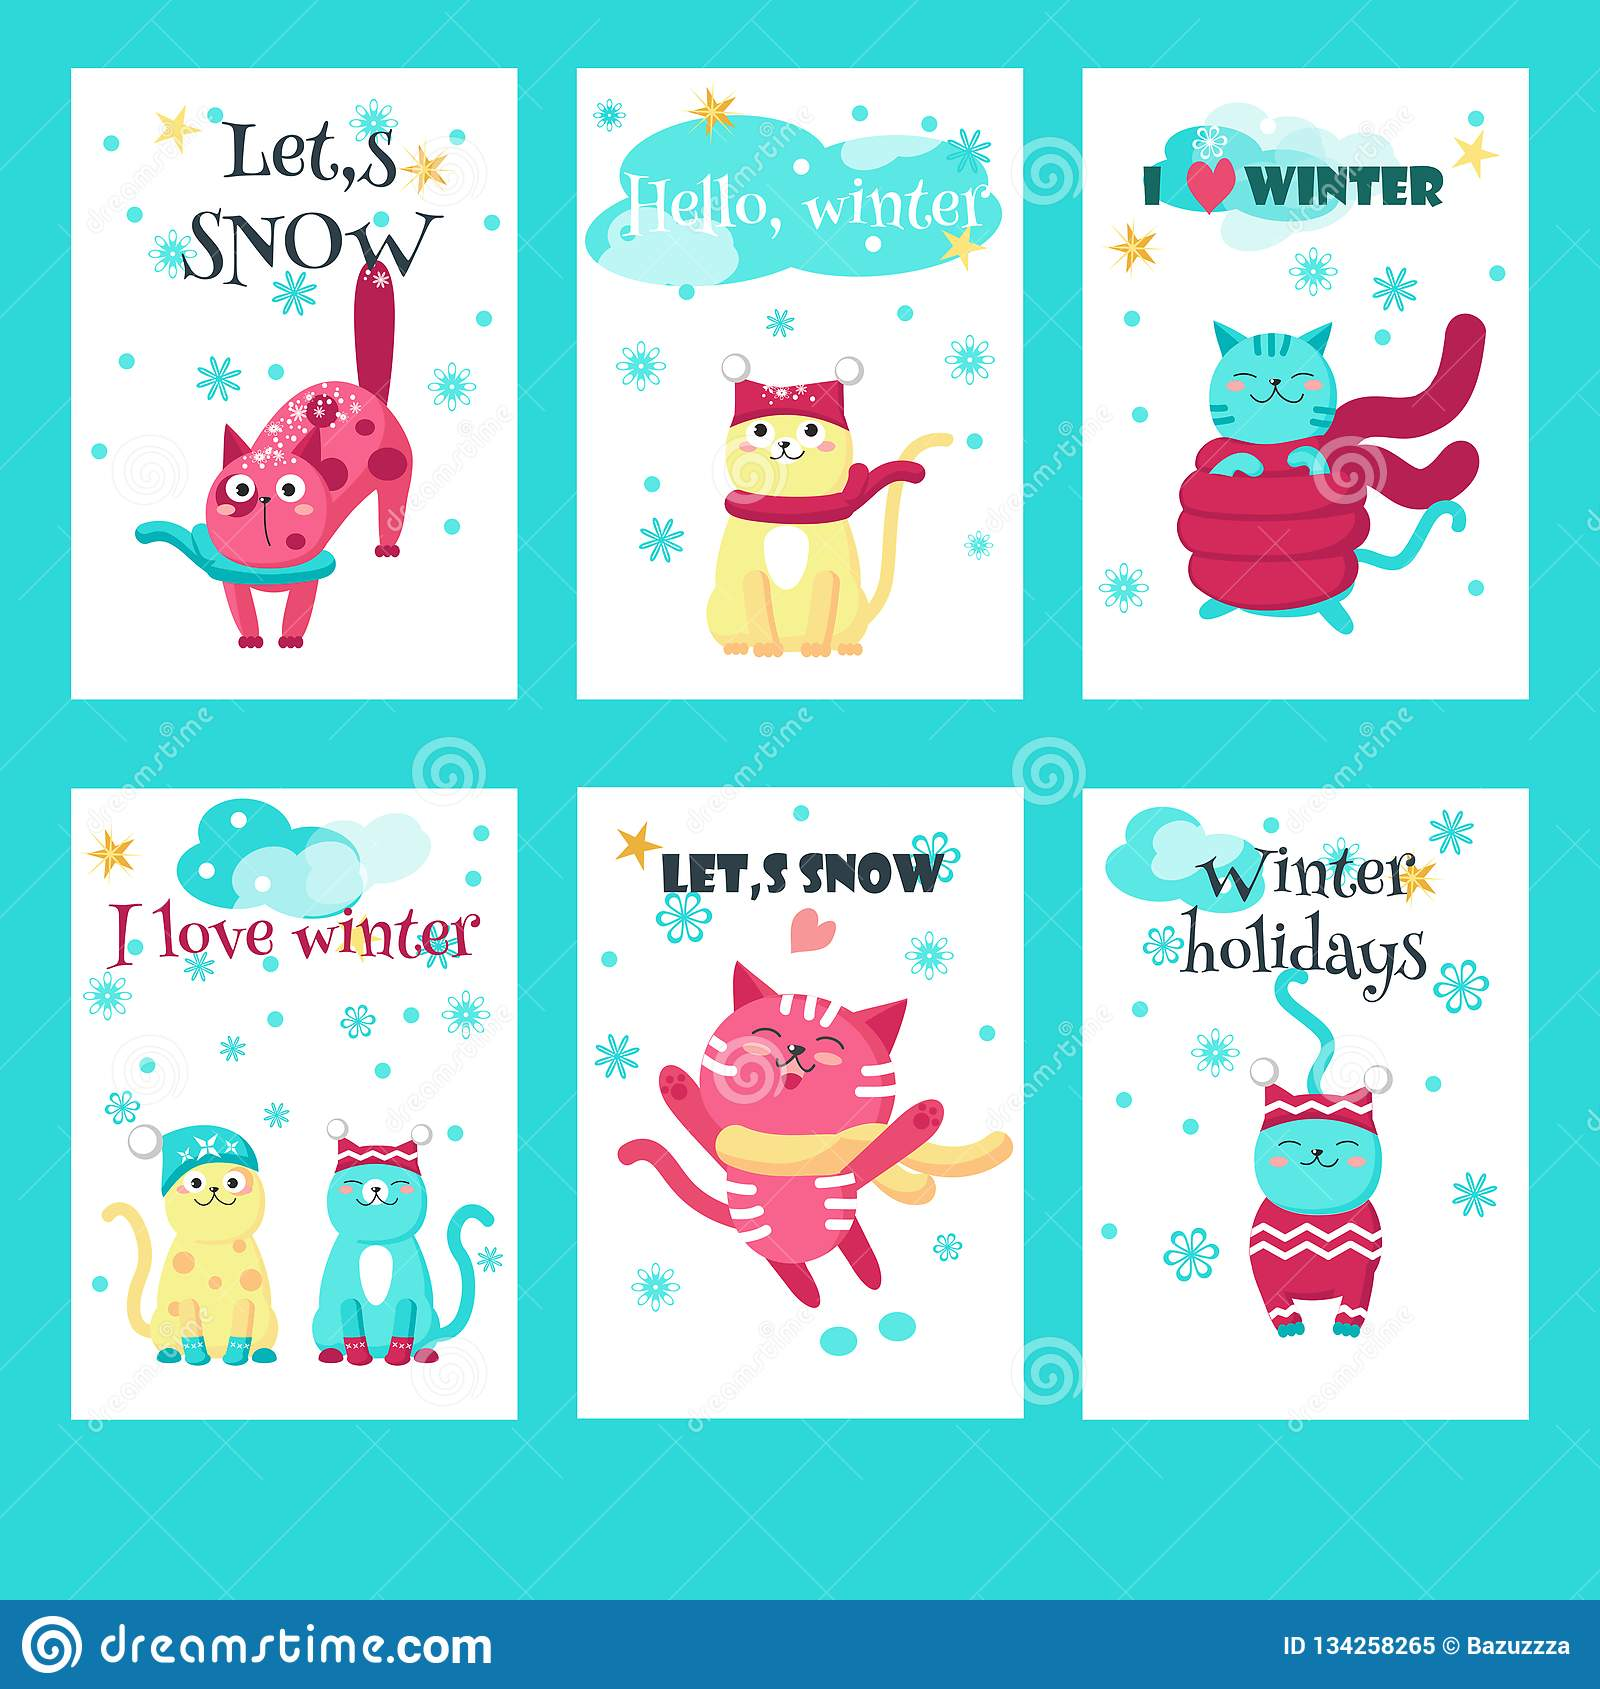 b7173b7d069a28 Vector set of winter cards with cute cats and inspirational quotations.  Happy kittens in warm knitted hats